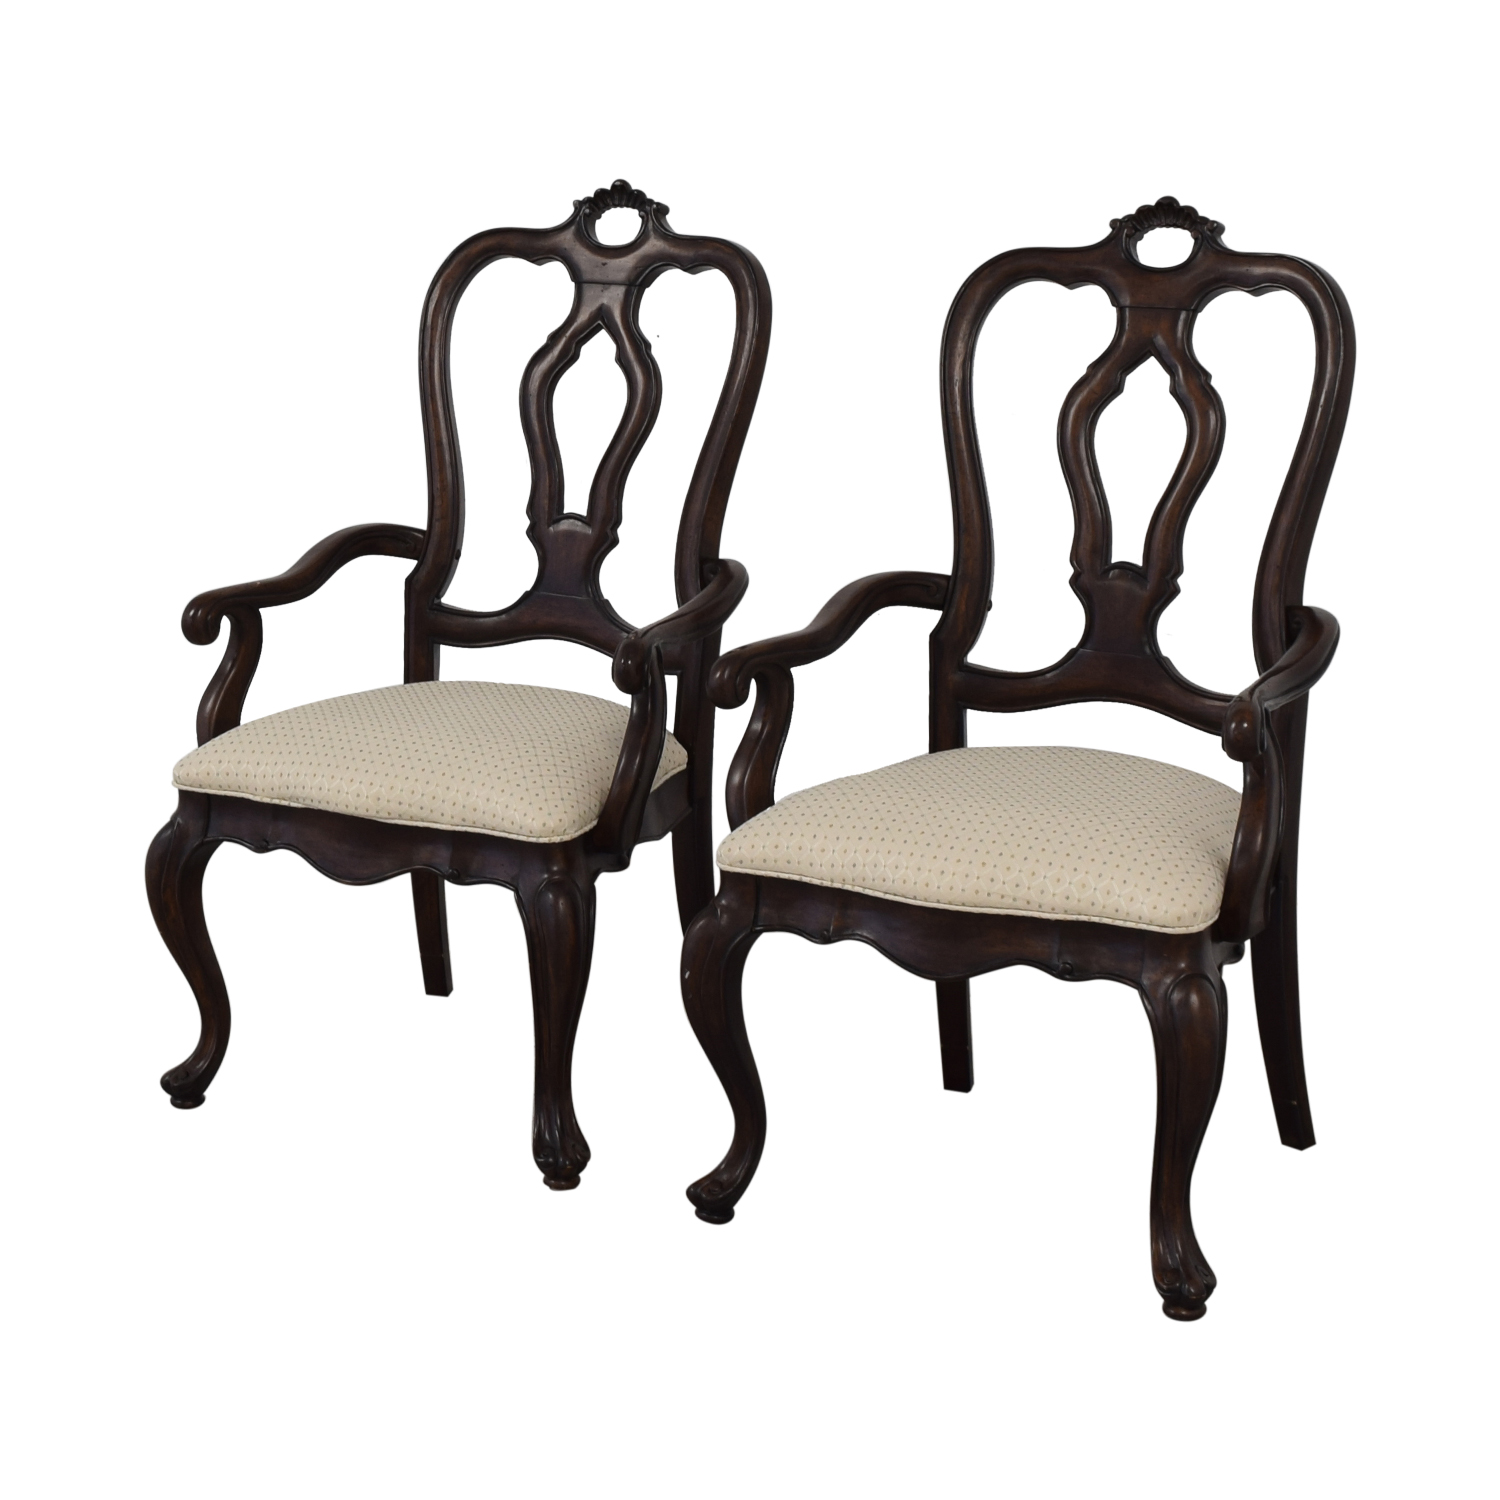 shop Thomasville Thomasville San Martino Dining Arm Chairs online